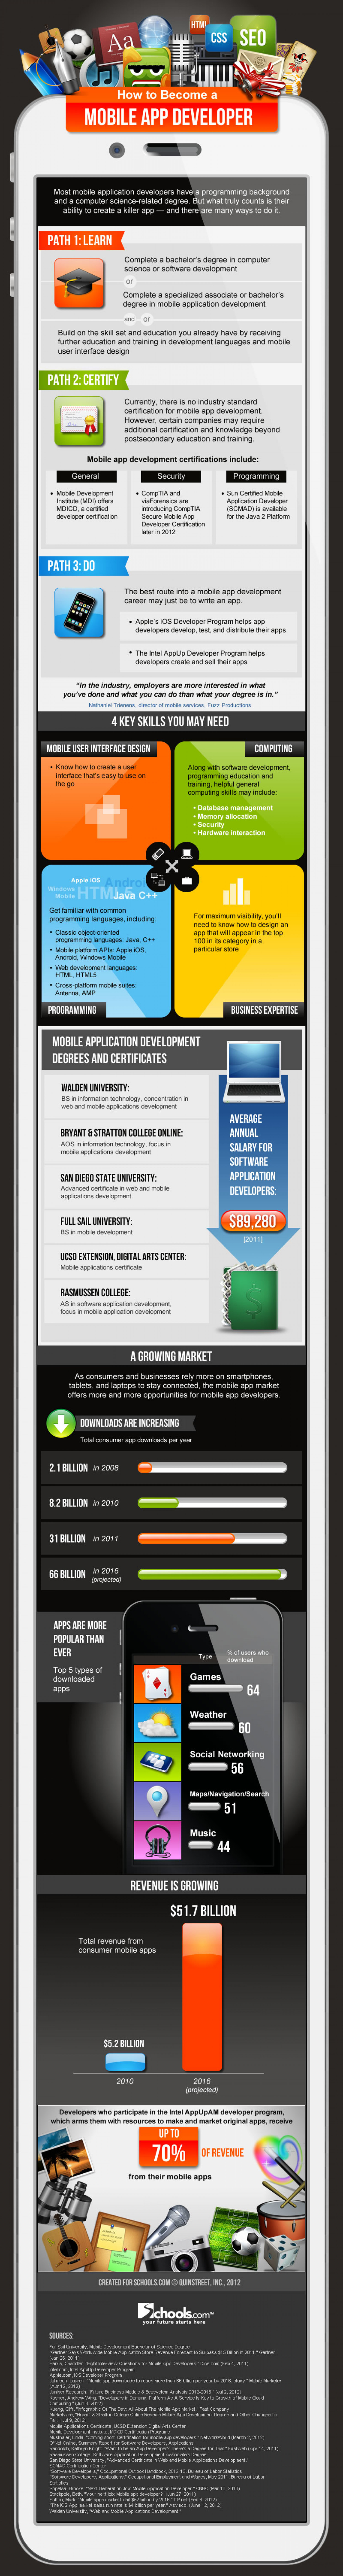 How to become a mobile app developer Infographic